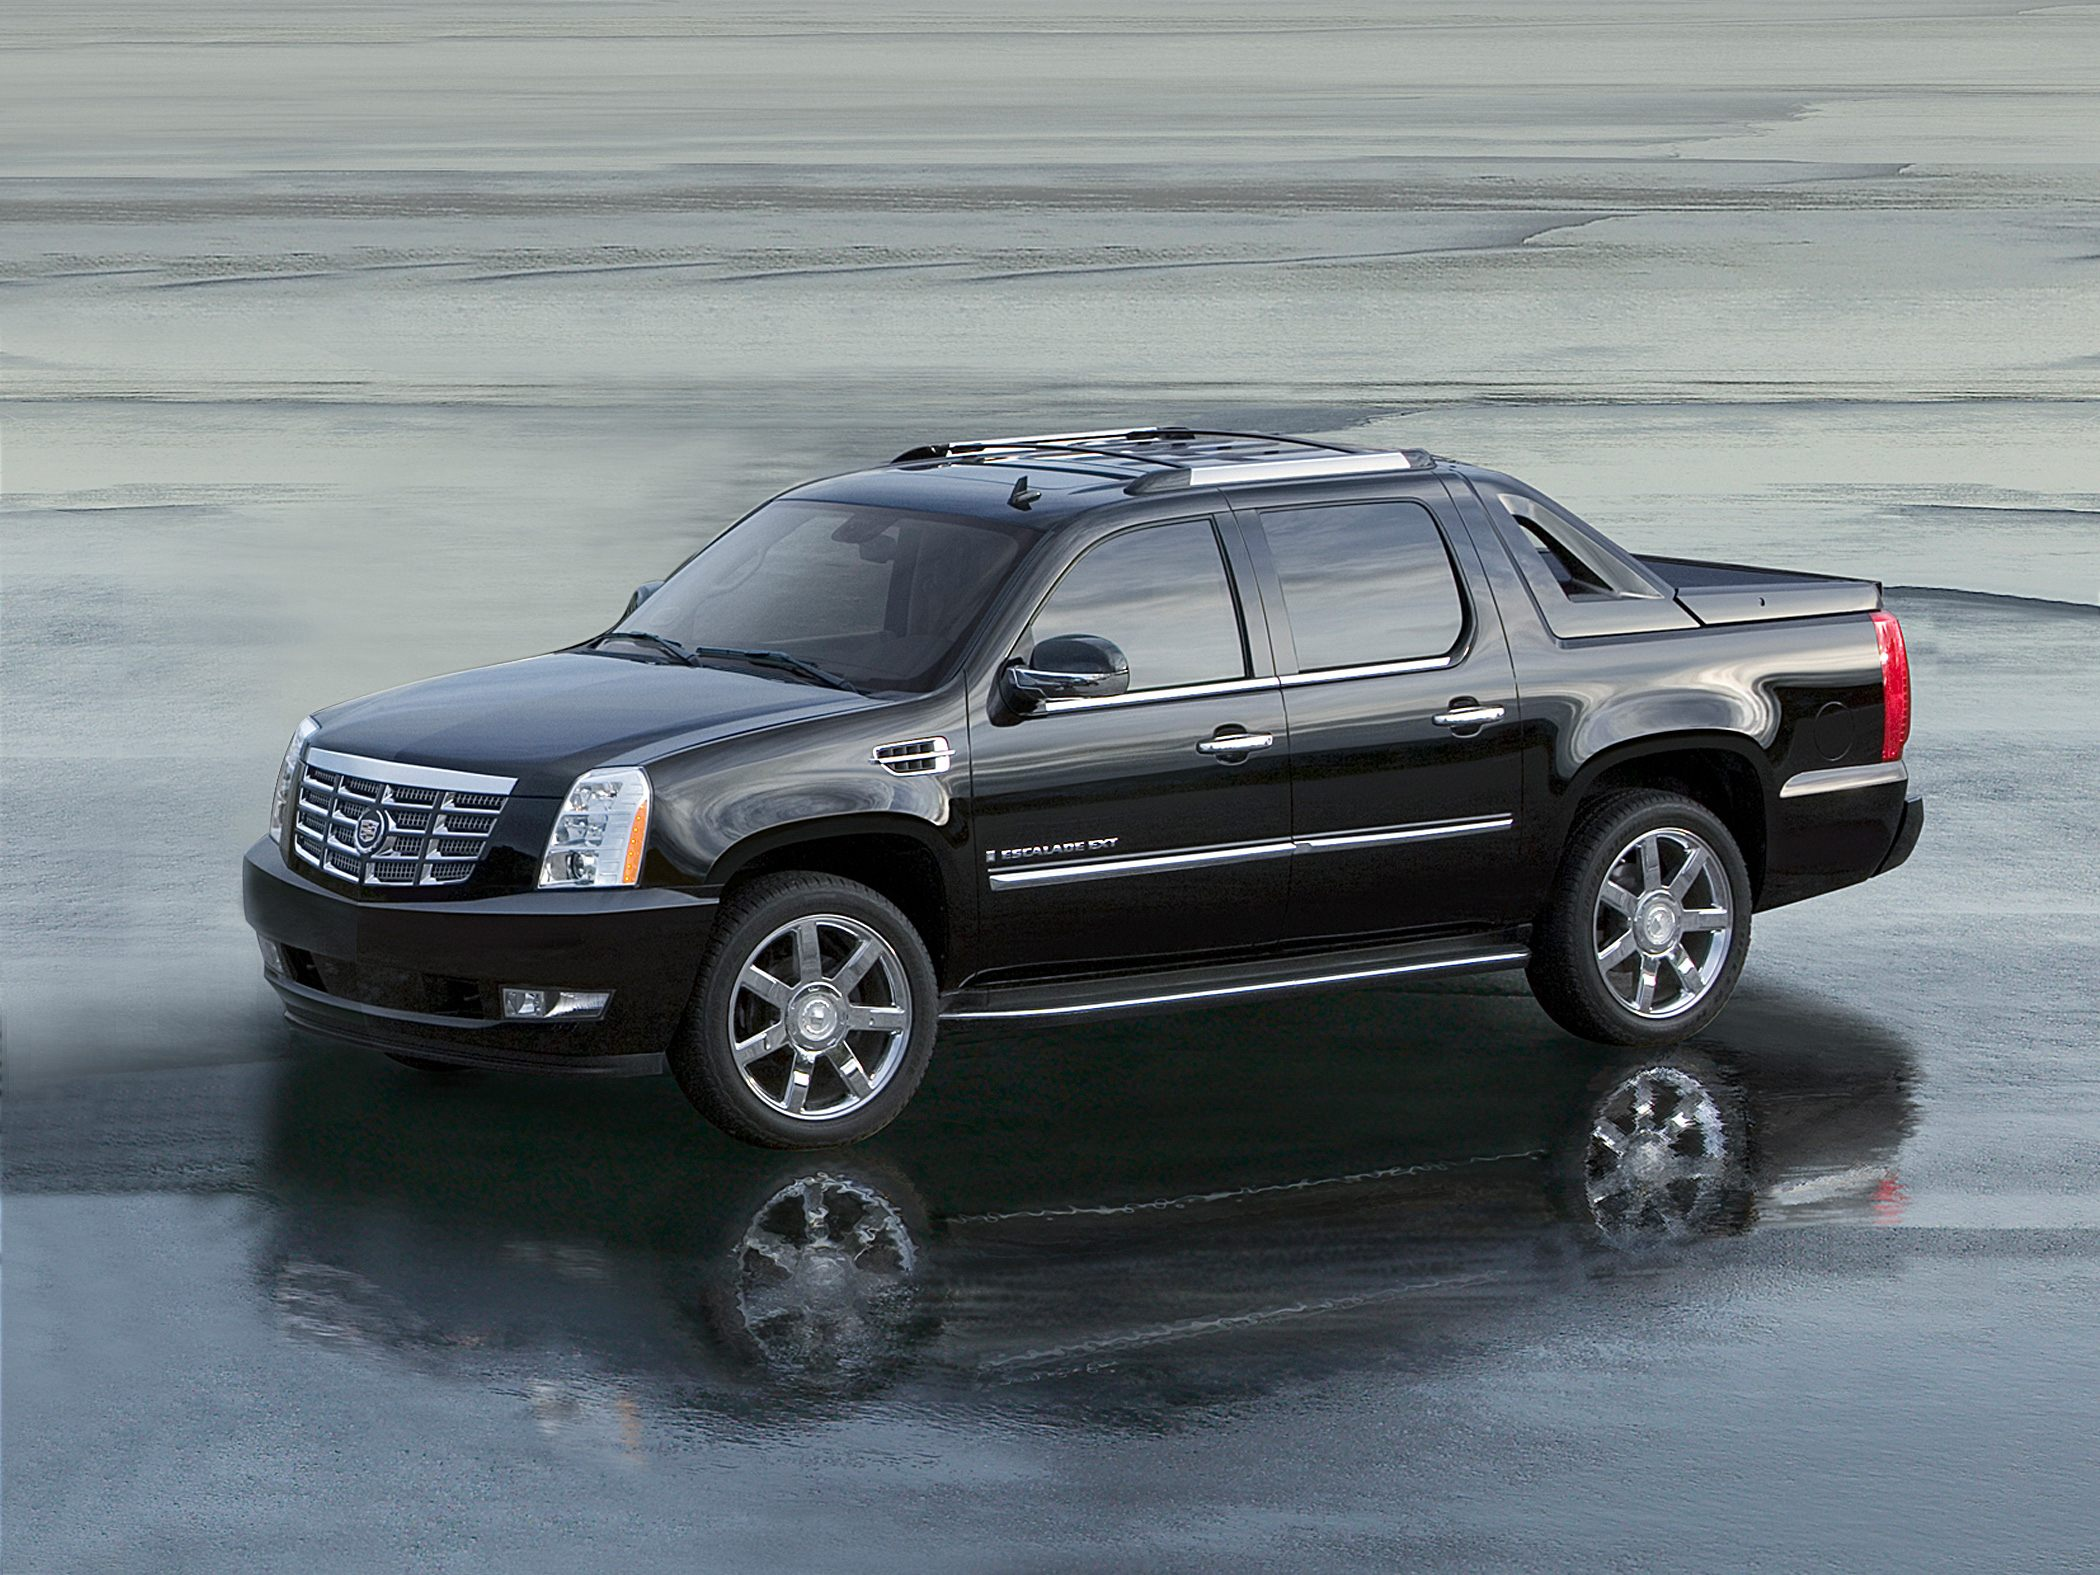 Cadillac Escalade EXT wheels #4